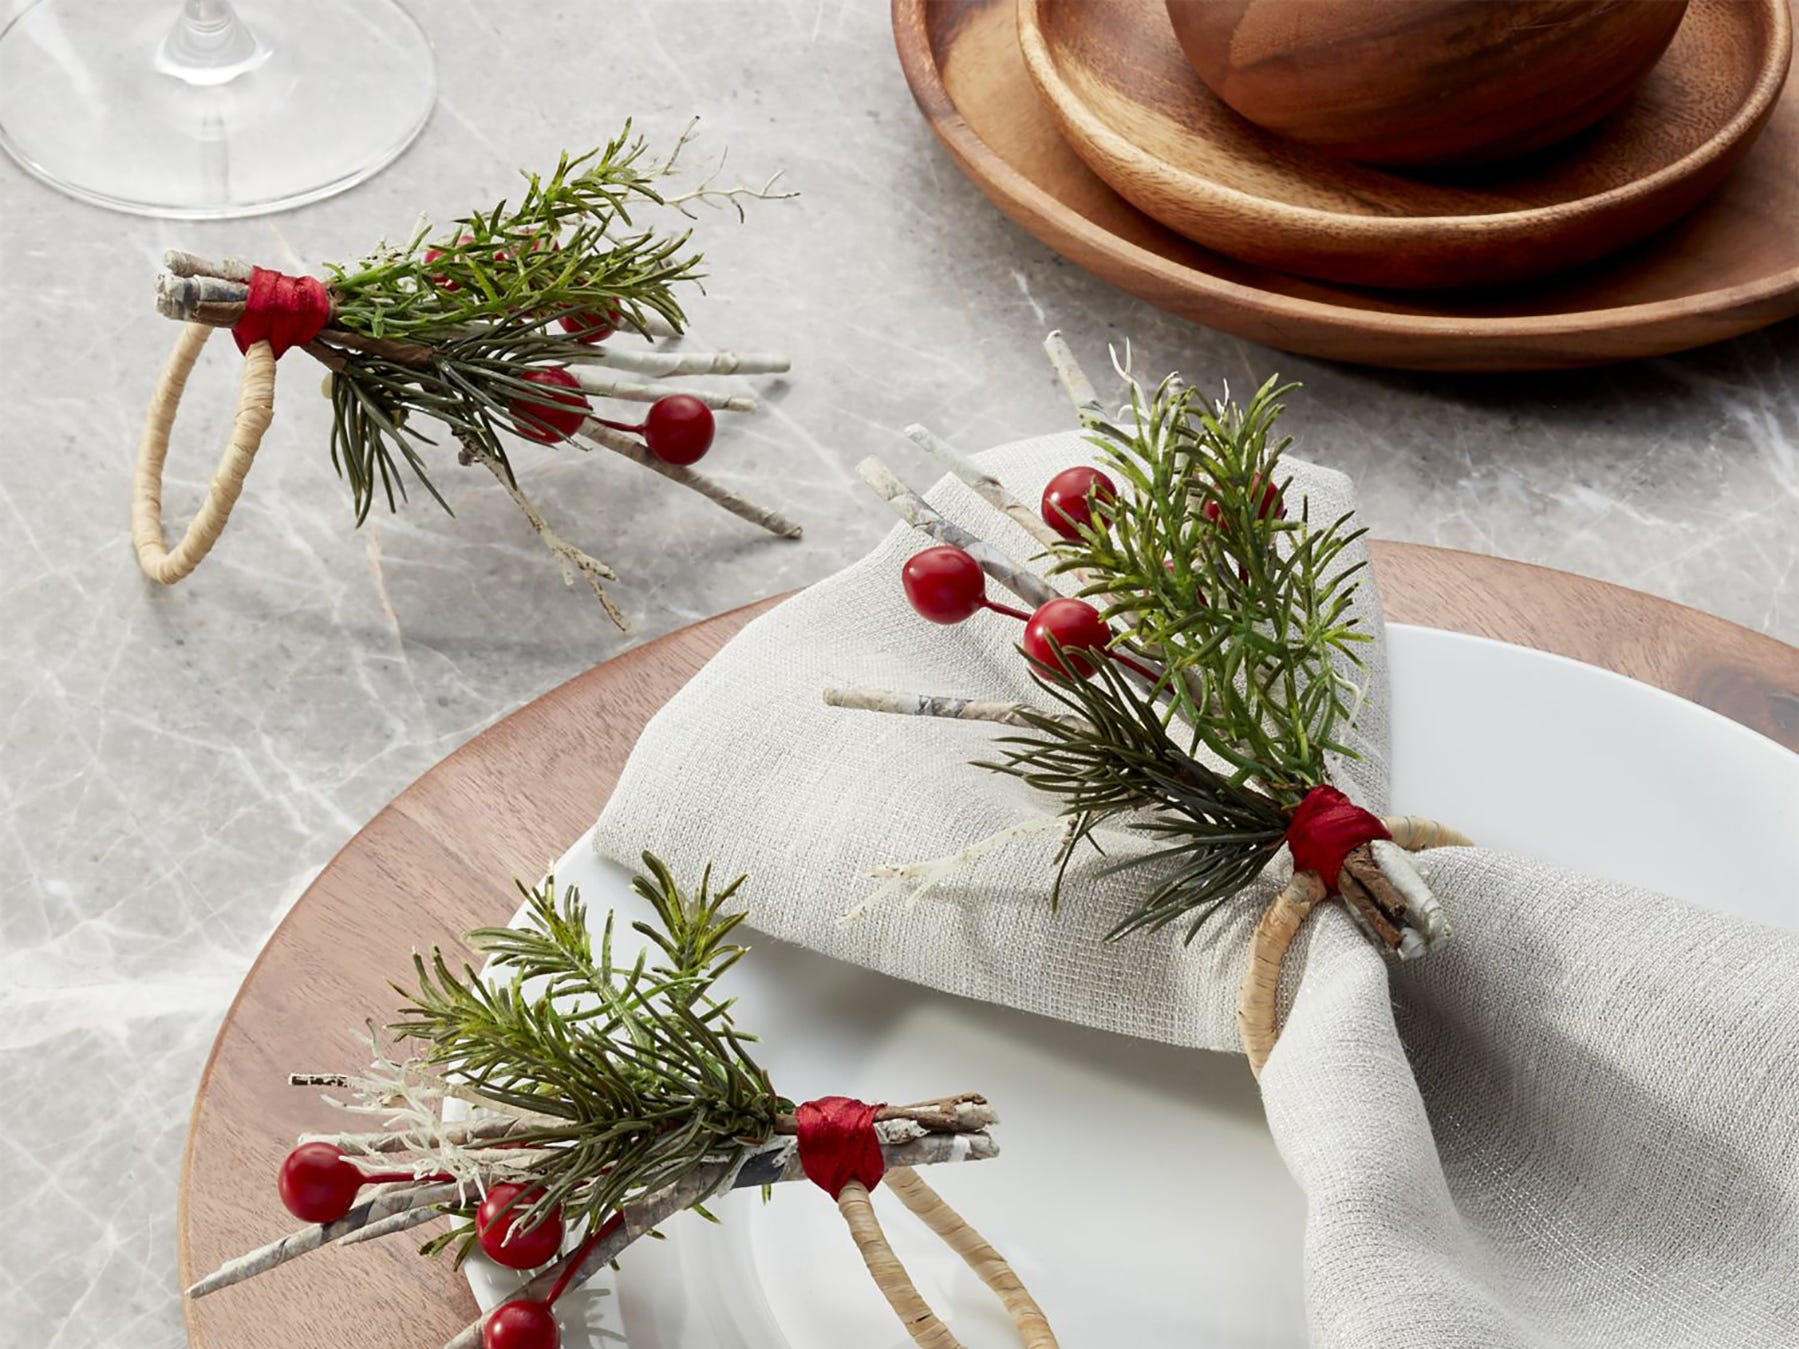 Springs of red berries, evergreens and white birch encircle these napkins. The napkin rings from Crate and Barrel are set on white plates over wooden chargers for a natural look.